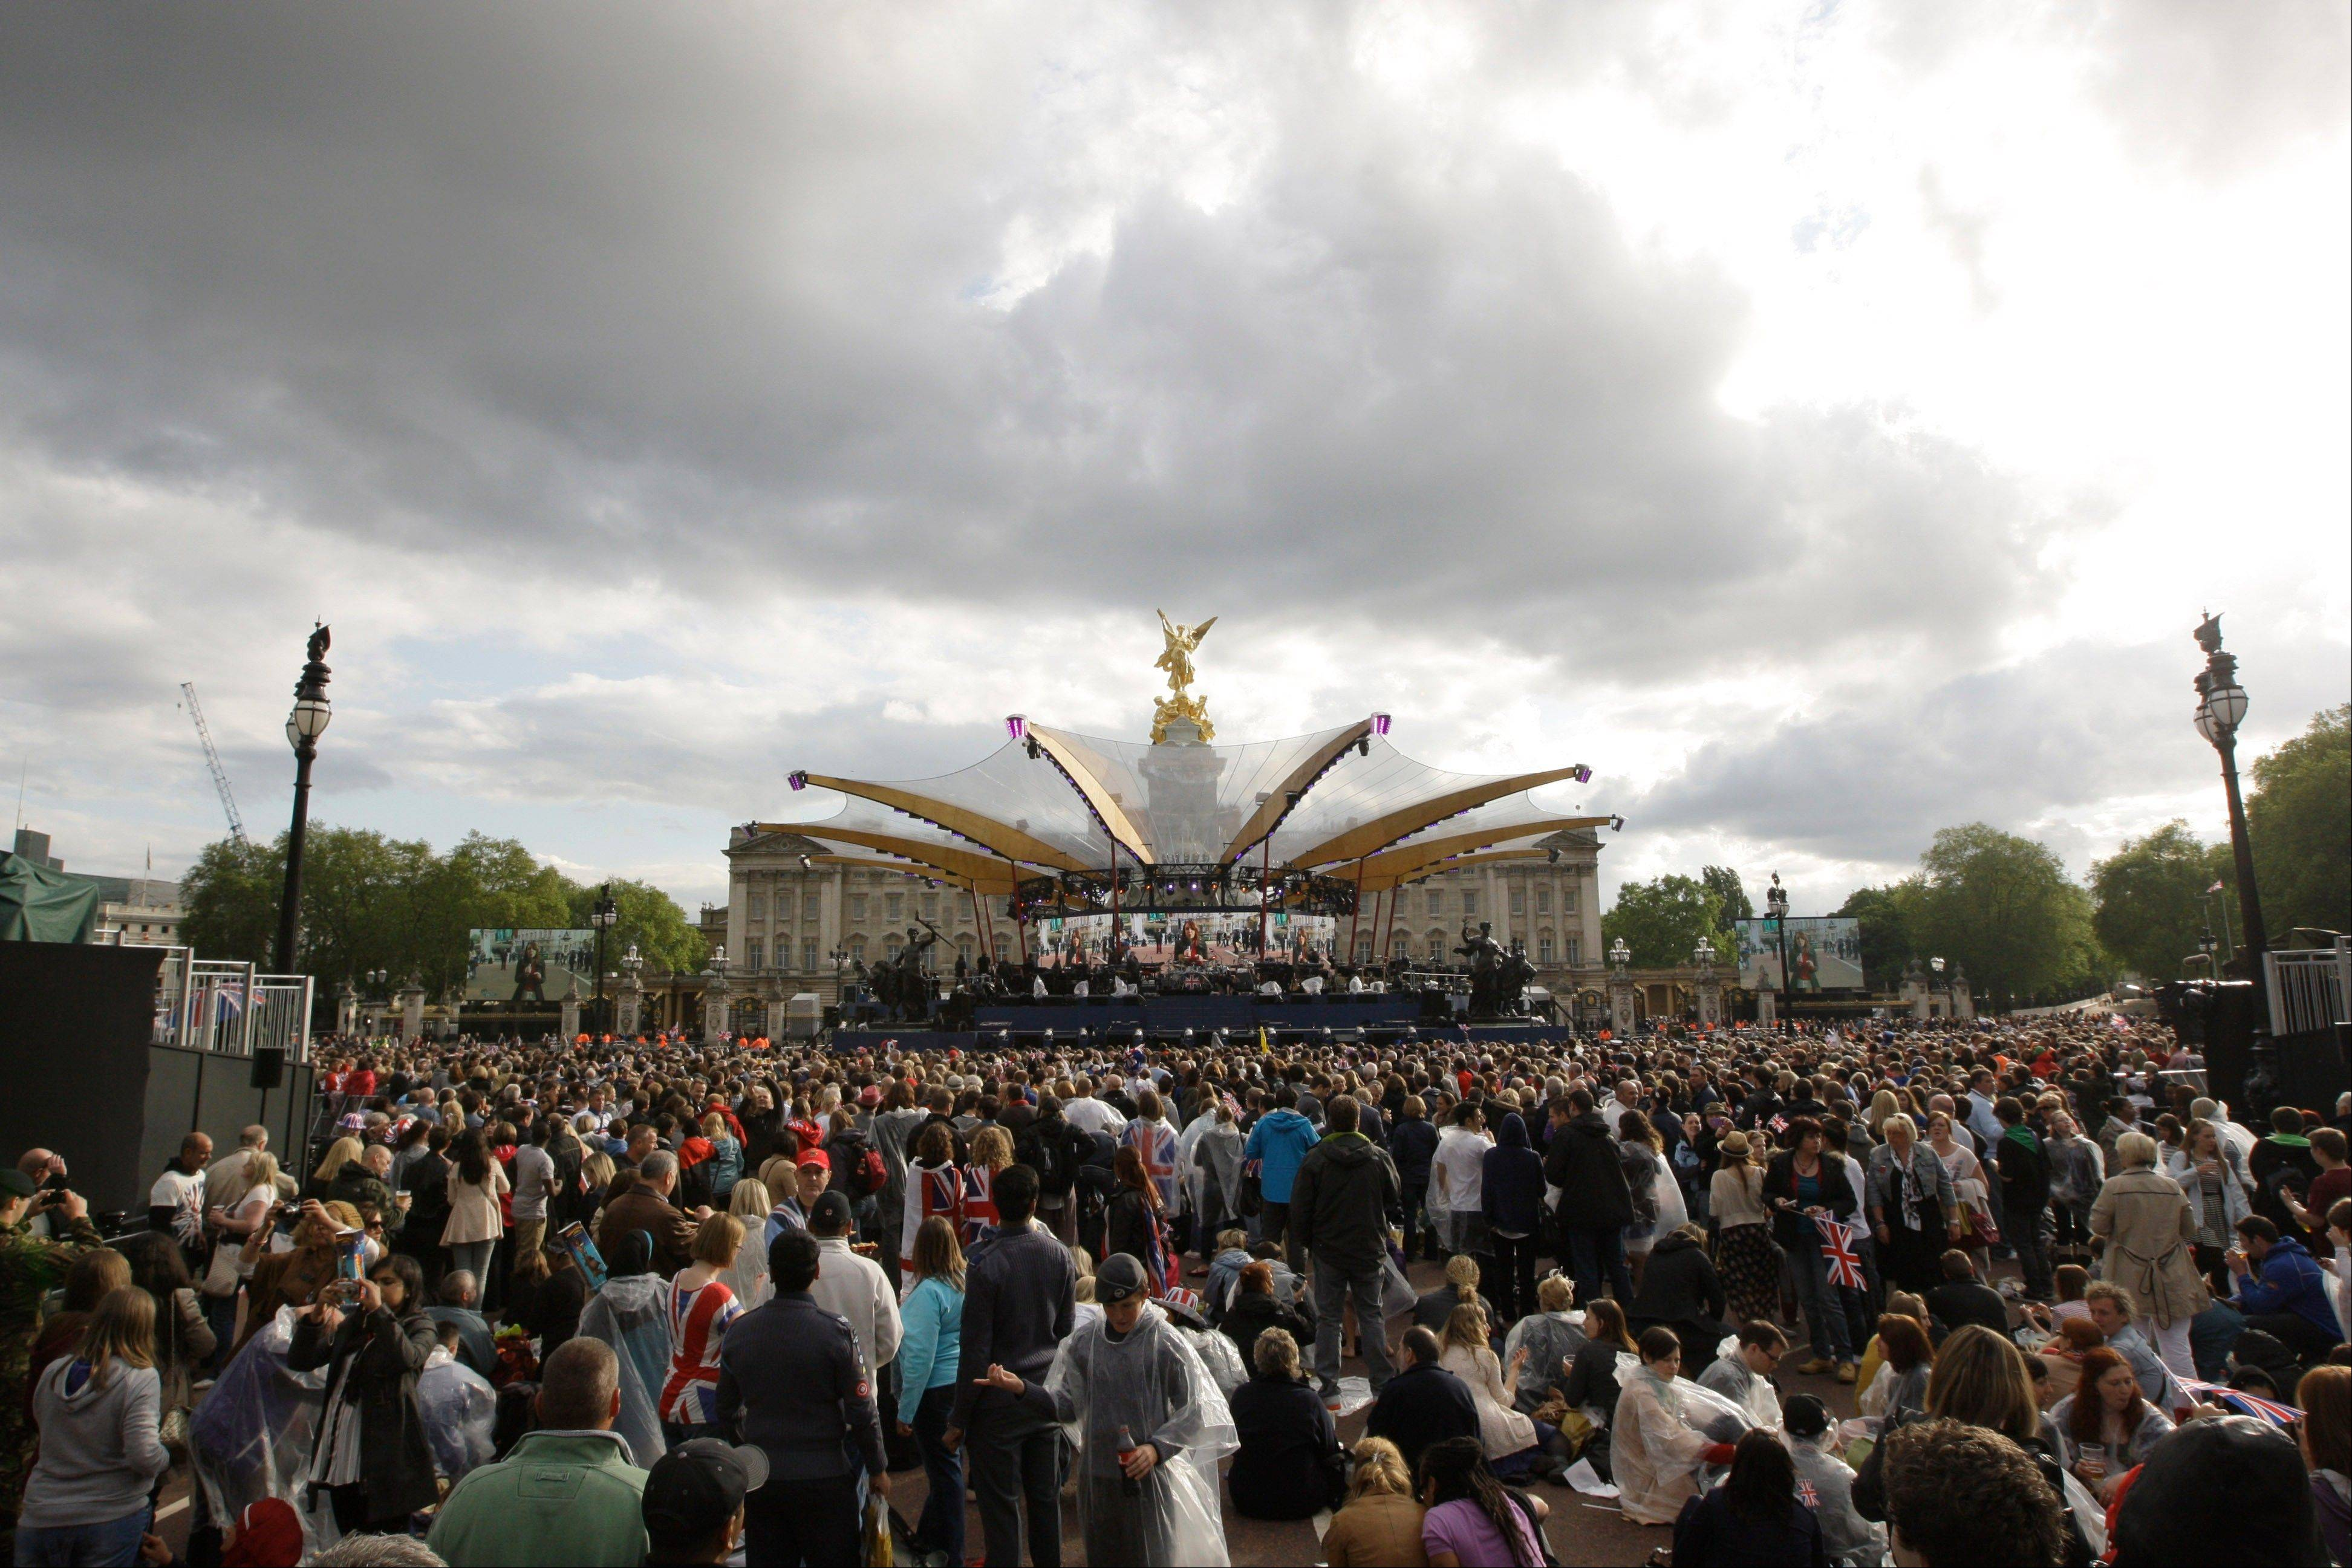 A view of the stage prior to the Queen's Jubilee Concert in front of Buckingham Palace, London, Monday, June 4, 2012. The concert is a part of four days of celebrations to mark the 60-year reign of Britain's Queen Elizabeth II.